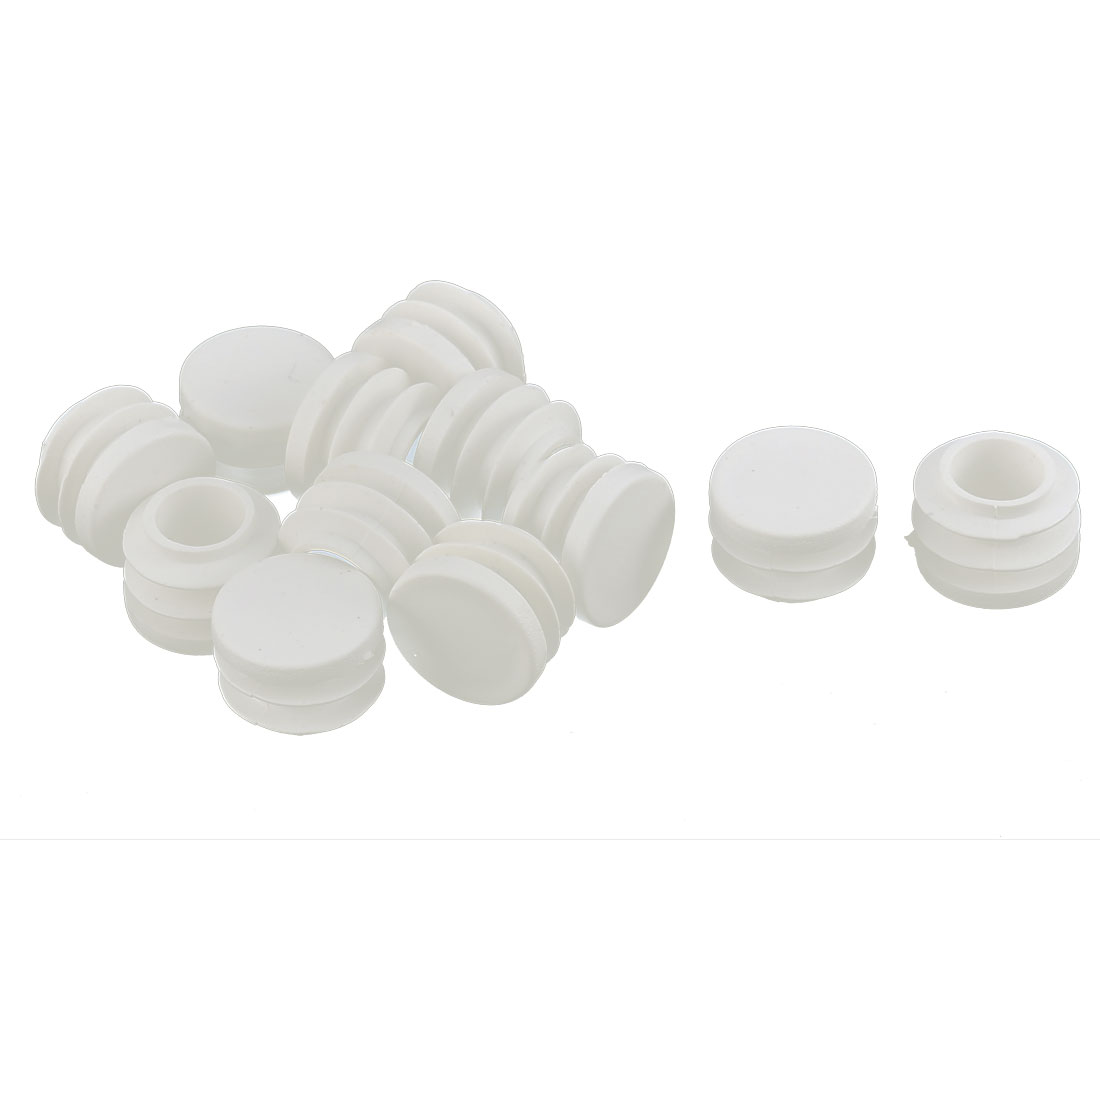 Table Chair Plastic Round Tube Pipe Insert Cap Cover Protector White 19mm Dia 12pcs